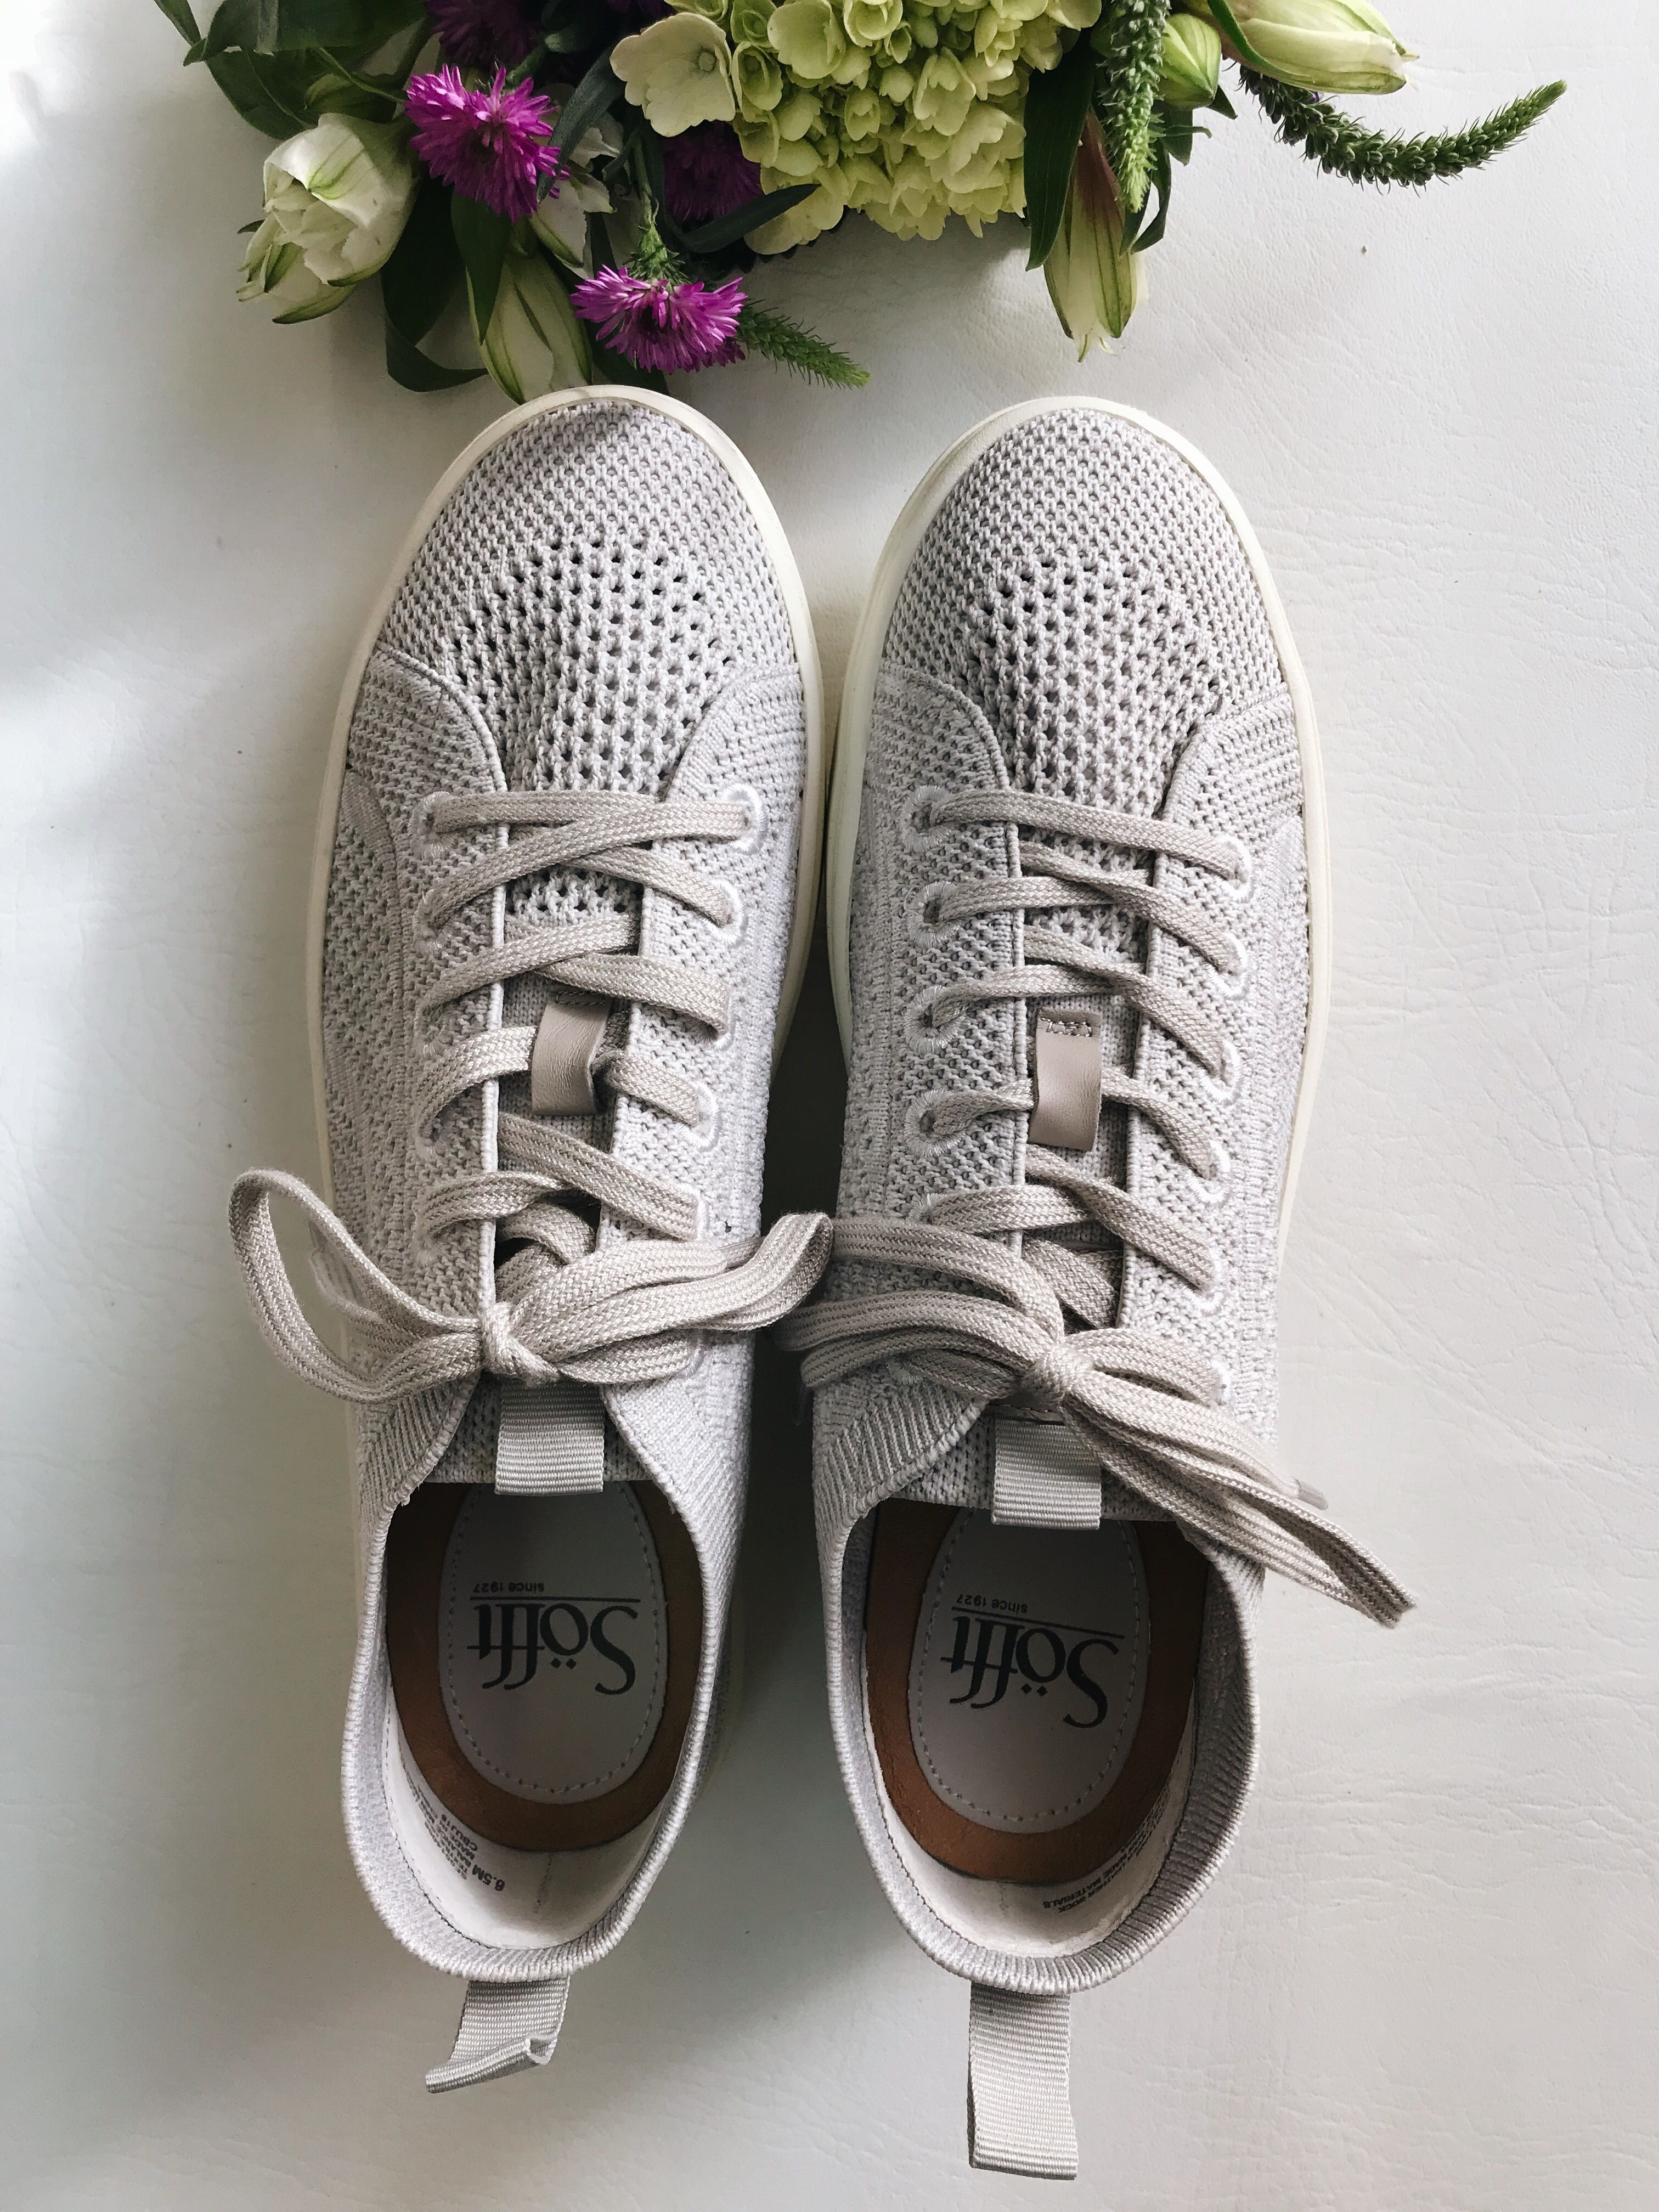 SOFFT SOFFT SOMERS KNIT OXFORD   Oxford